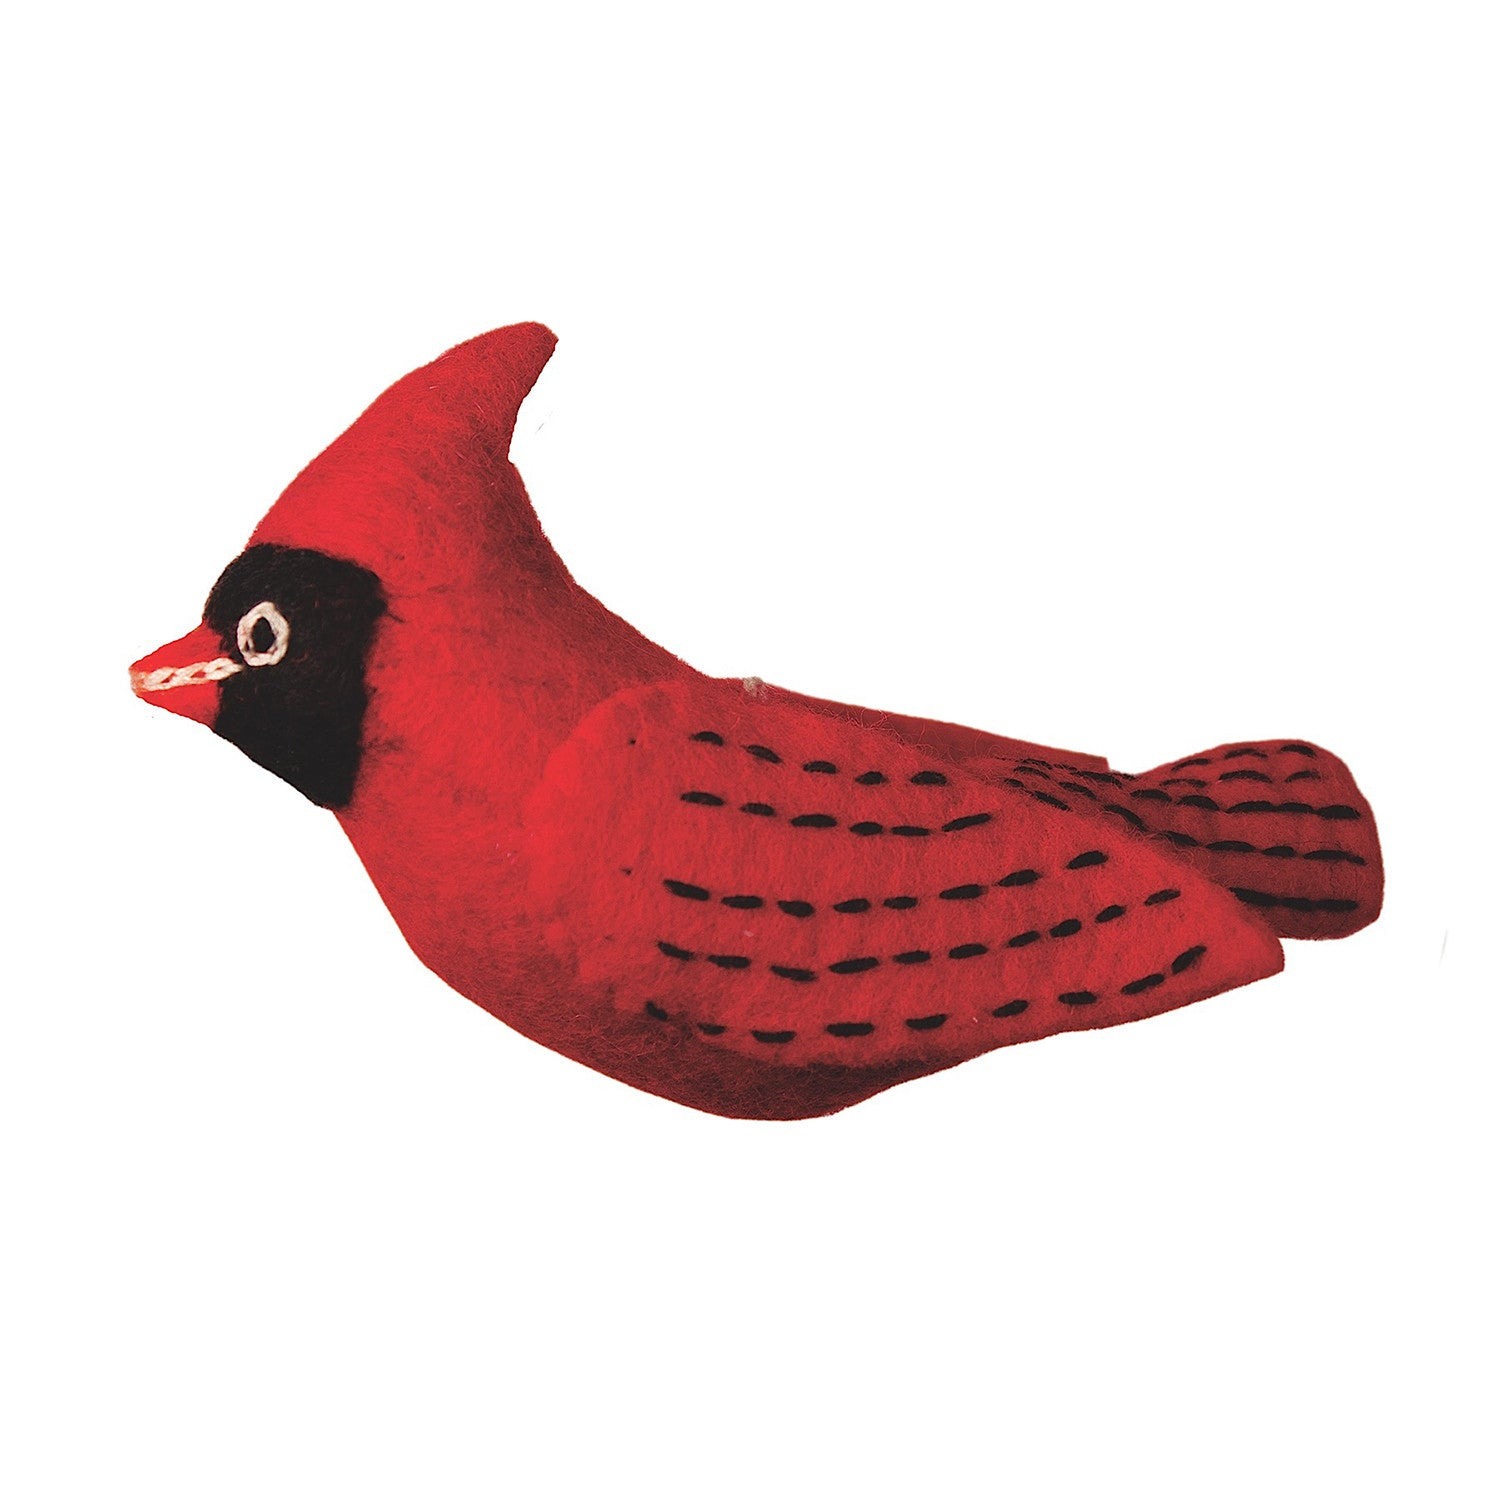 Felt Bird Garden Ornament - Cardinal - Home Decor - Garden- This Blue Sea